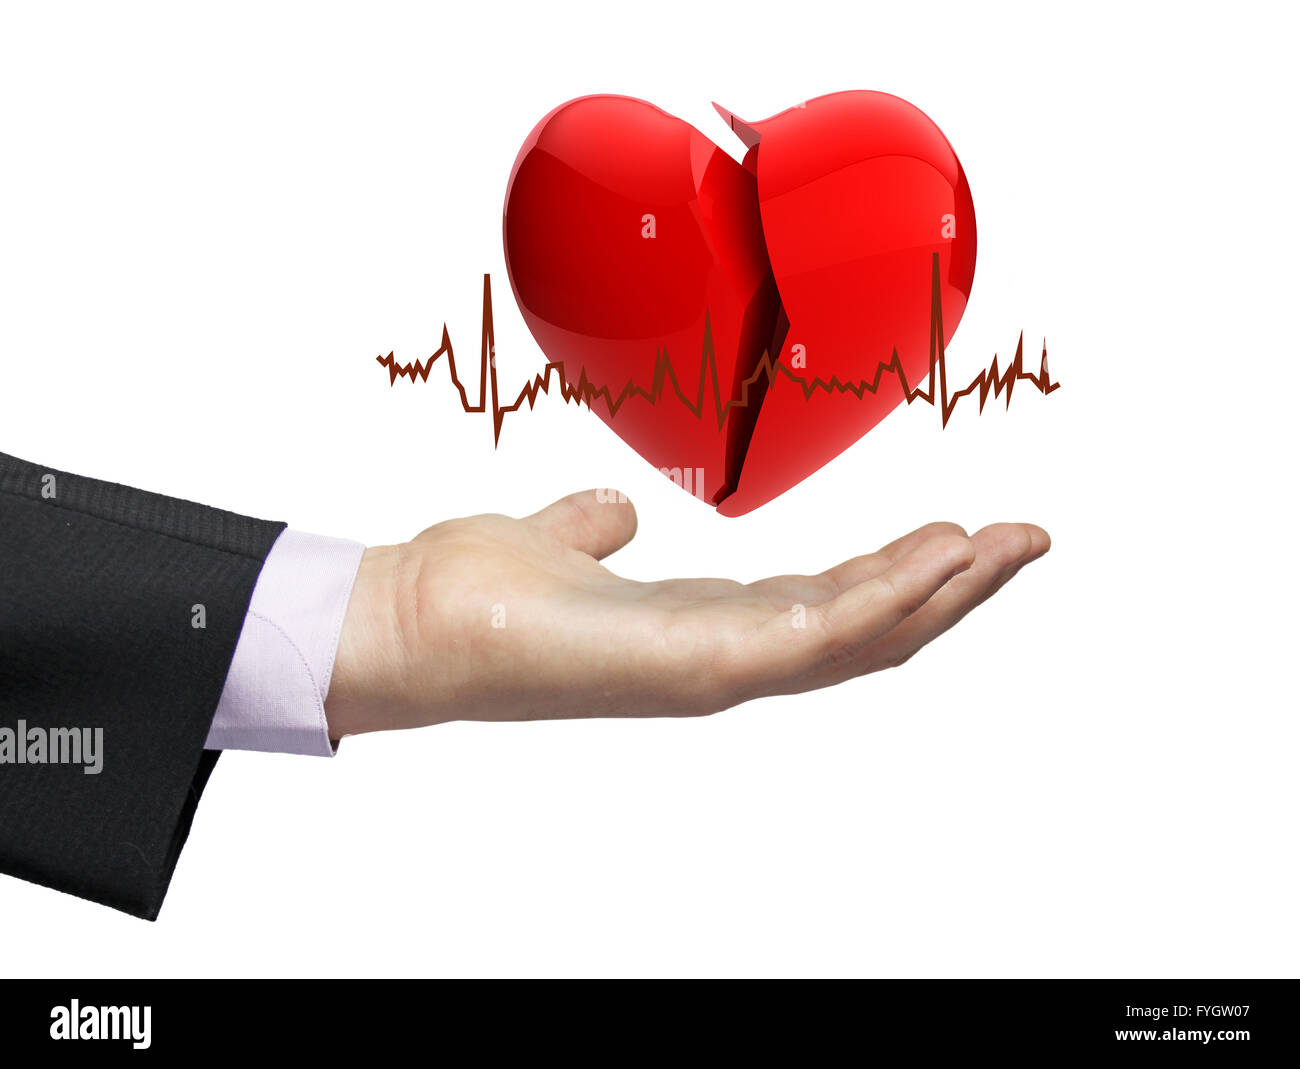 illness concept: a broken hearth over a businessman hand with electrocardiogram - Stock Image